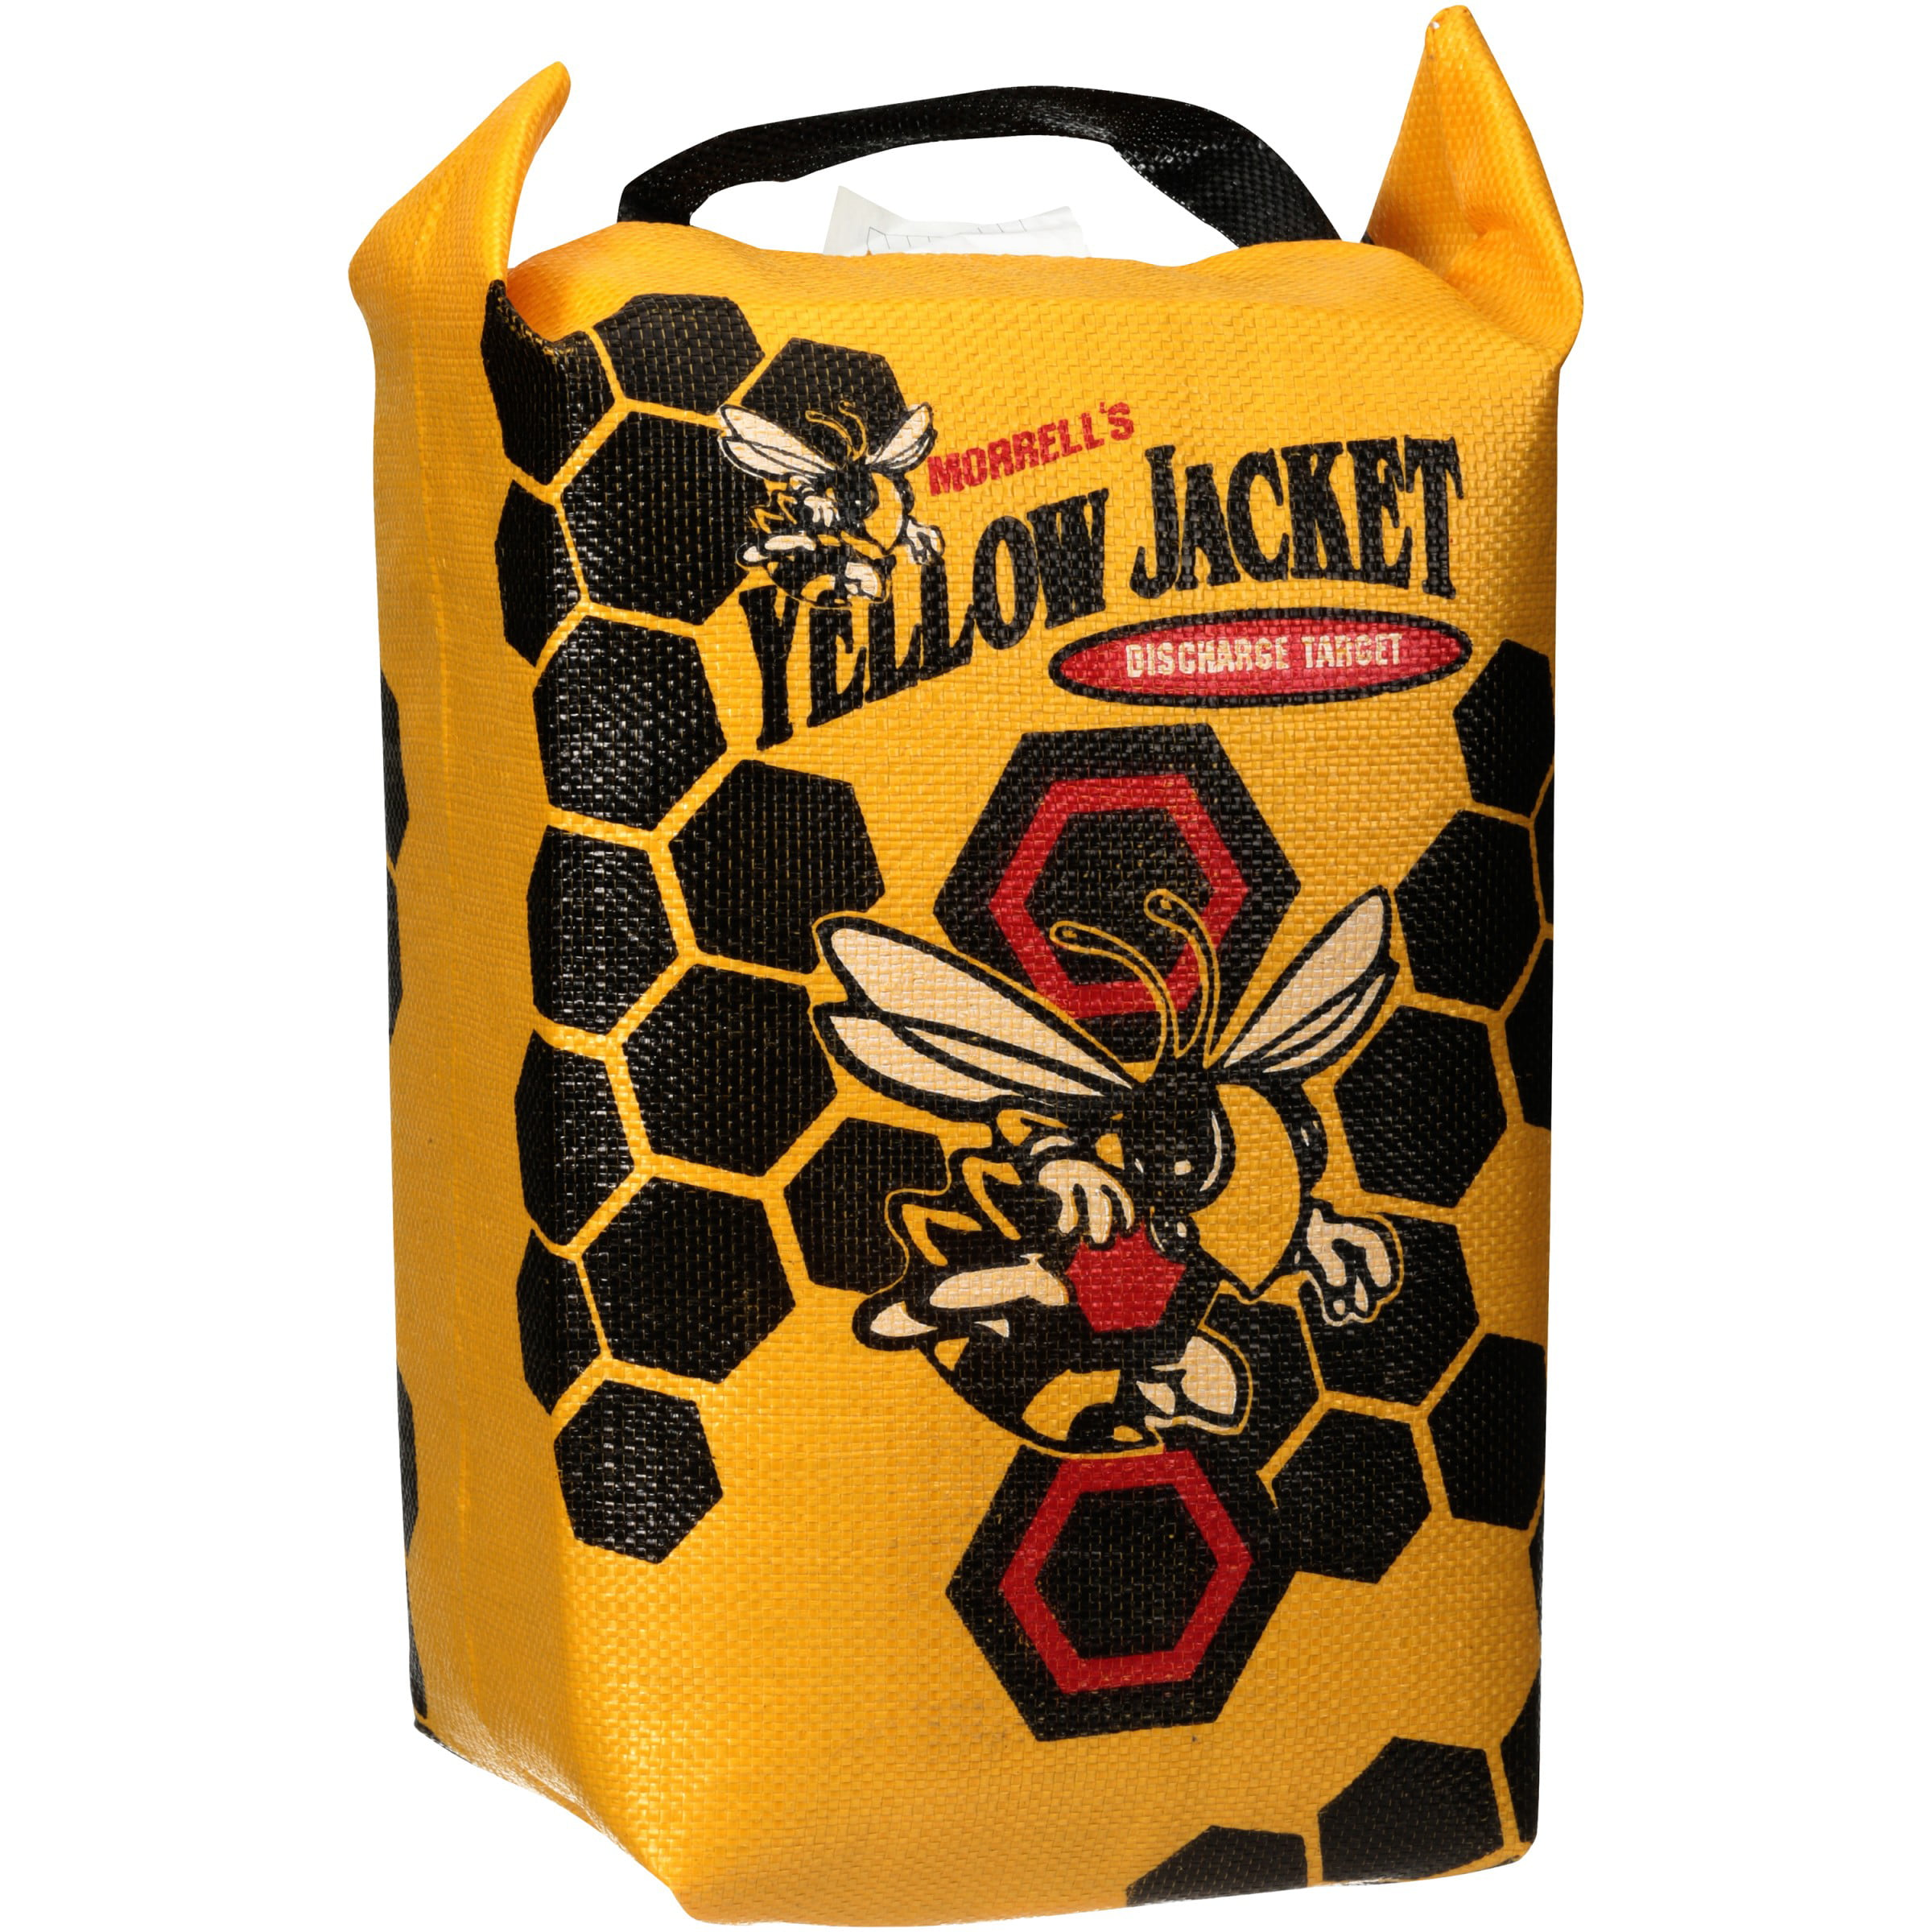 Morrell Targets Yellow Jacket Final Shot Discharge Archery Target by Morrell Targets